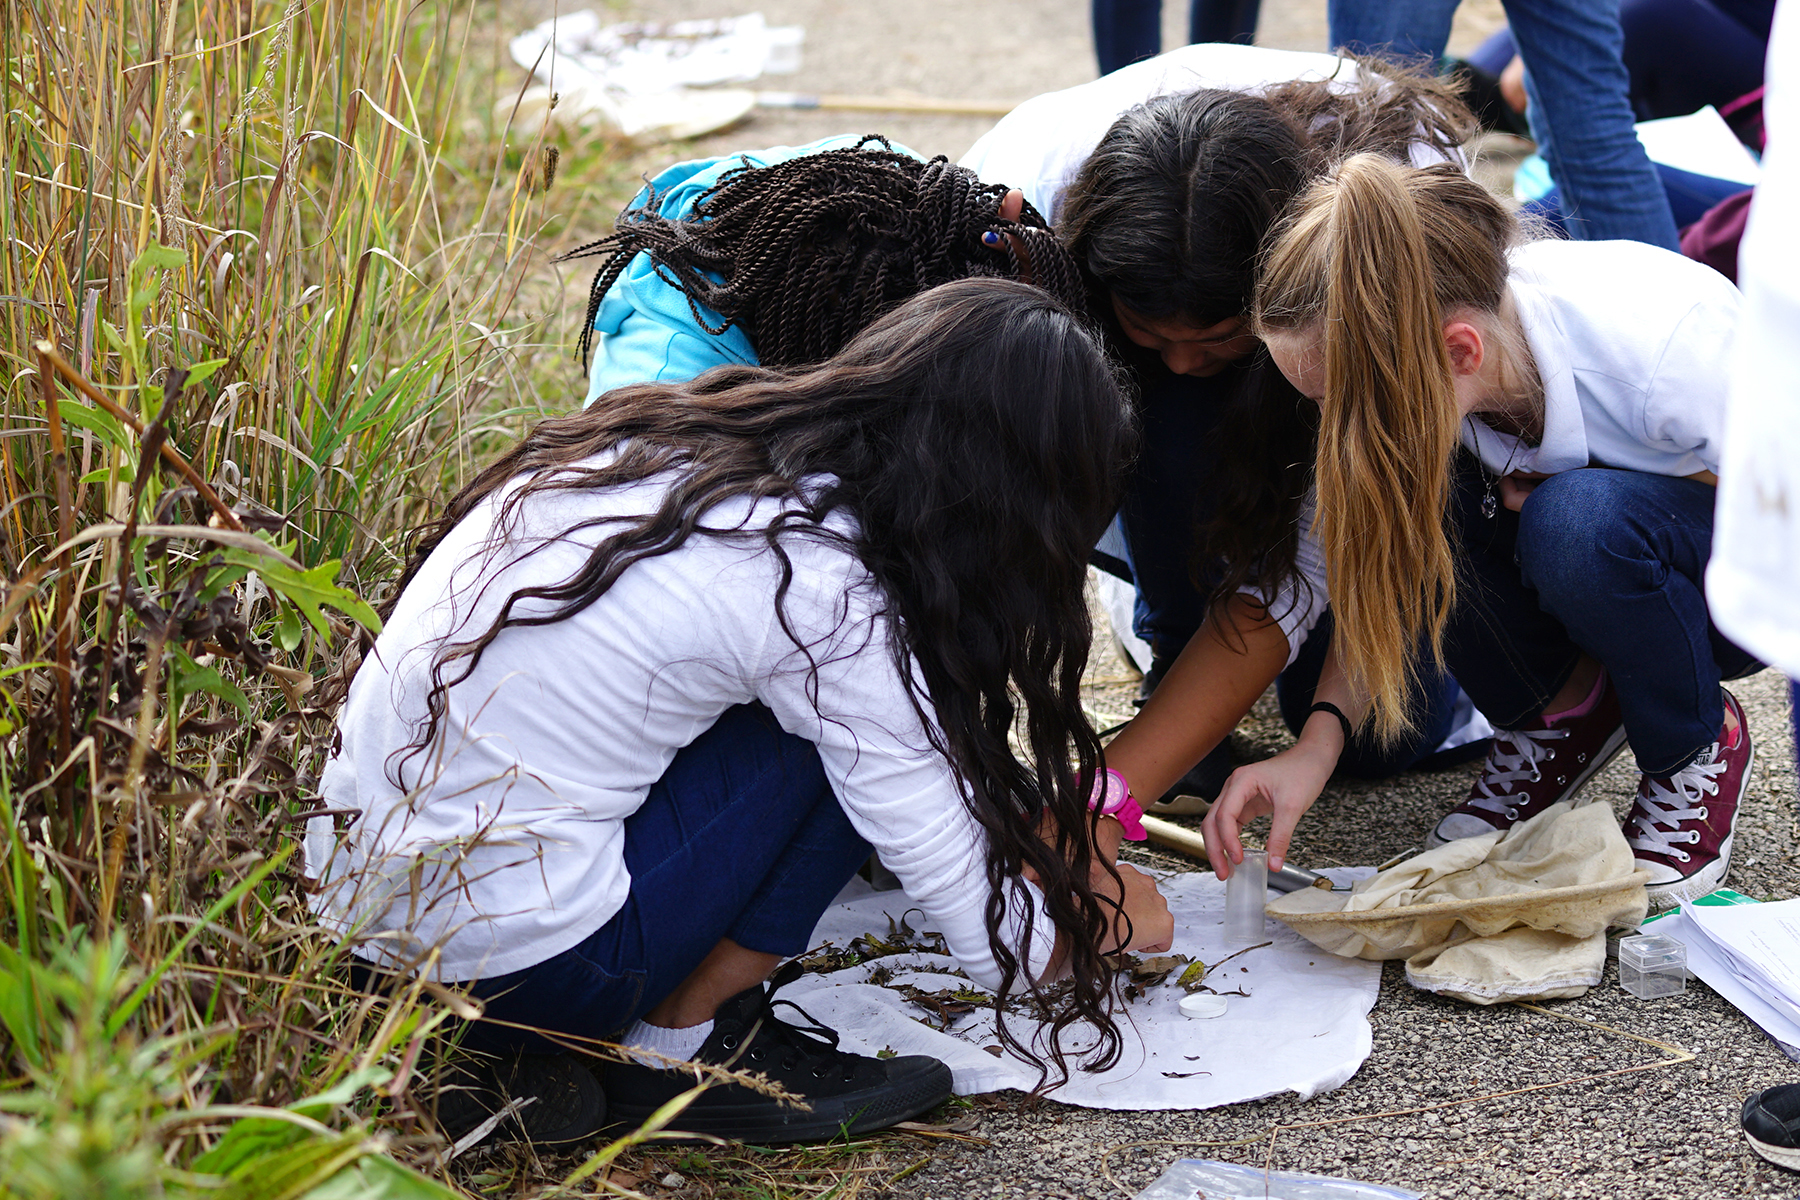 The kids learn about insects. nature, ecology, prairie, STEM, education, outreach, people Photo: Leticia Shaddix